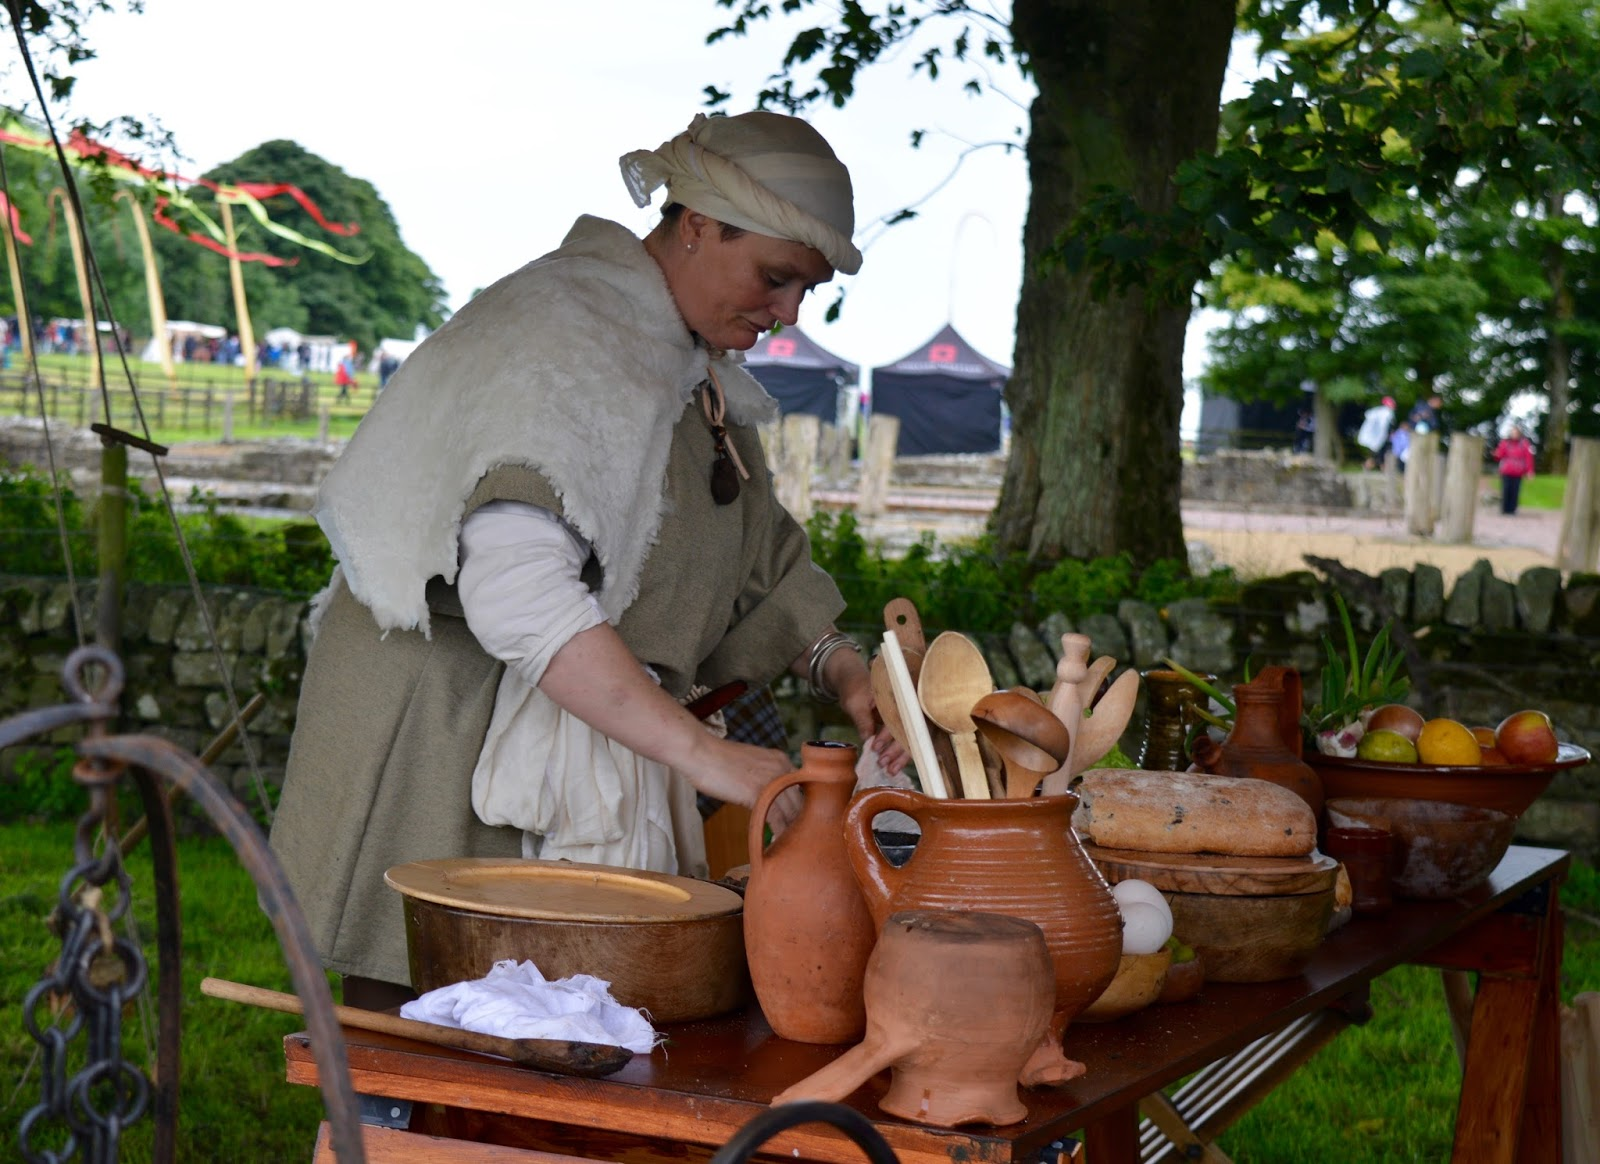 Hadrian's Wall Live 2016 | Birdoswald Roman Fort & Housesteads - A Review - traditional sausage making